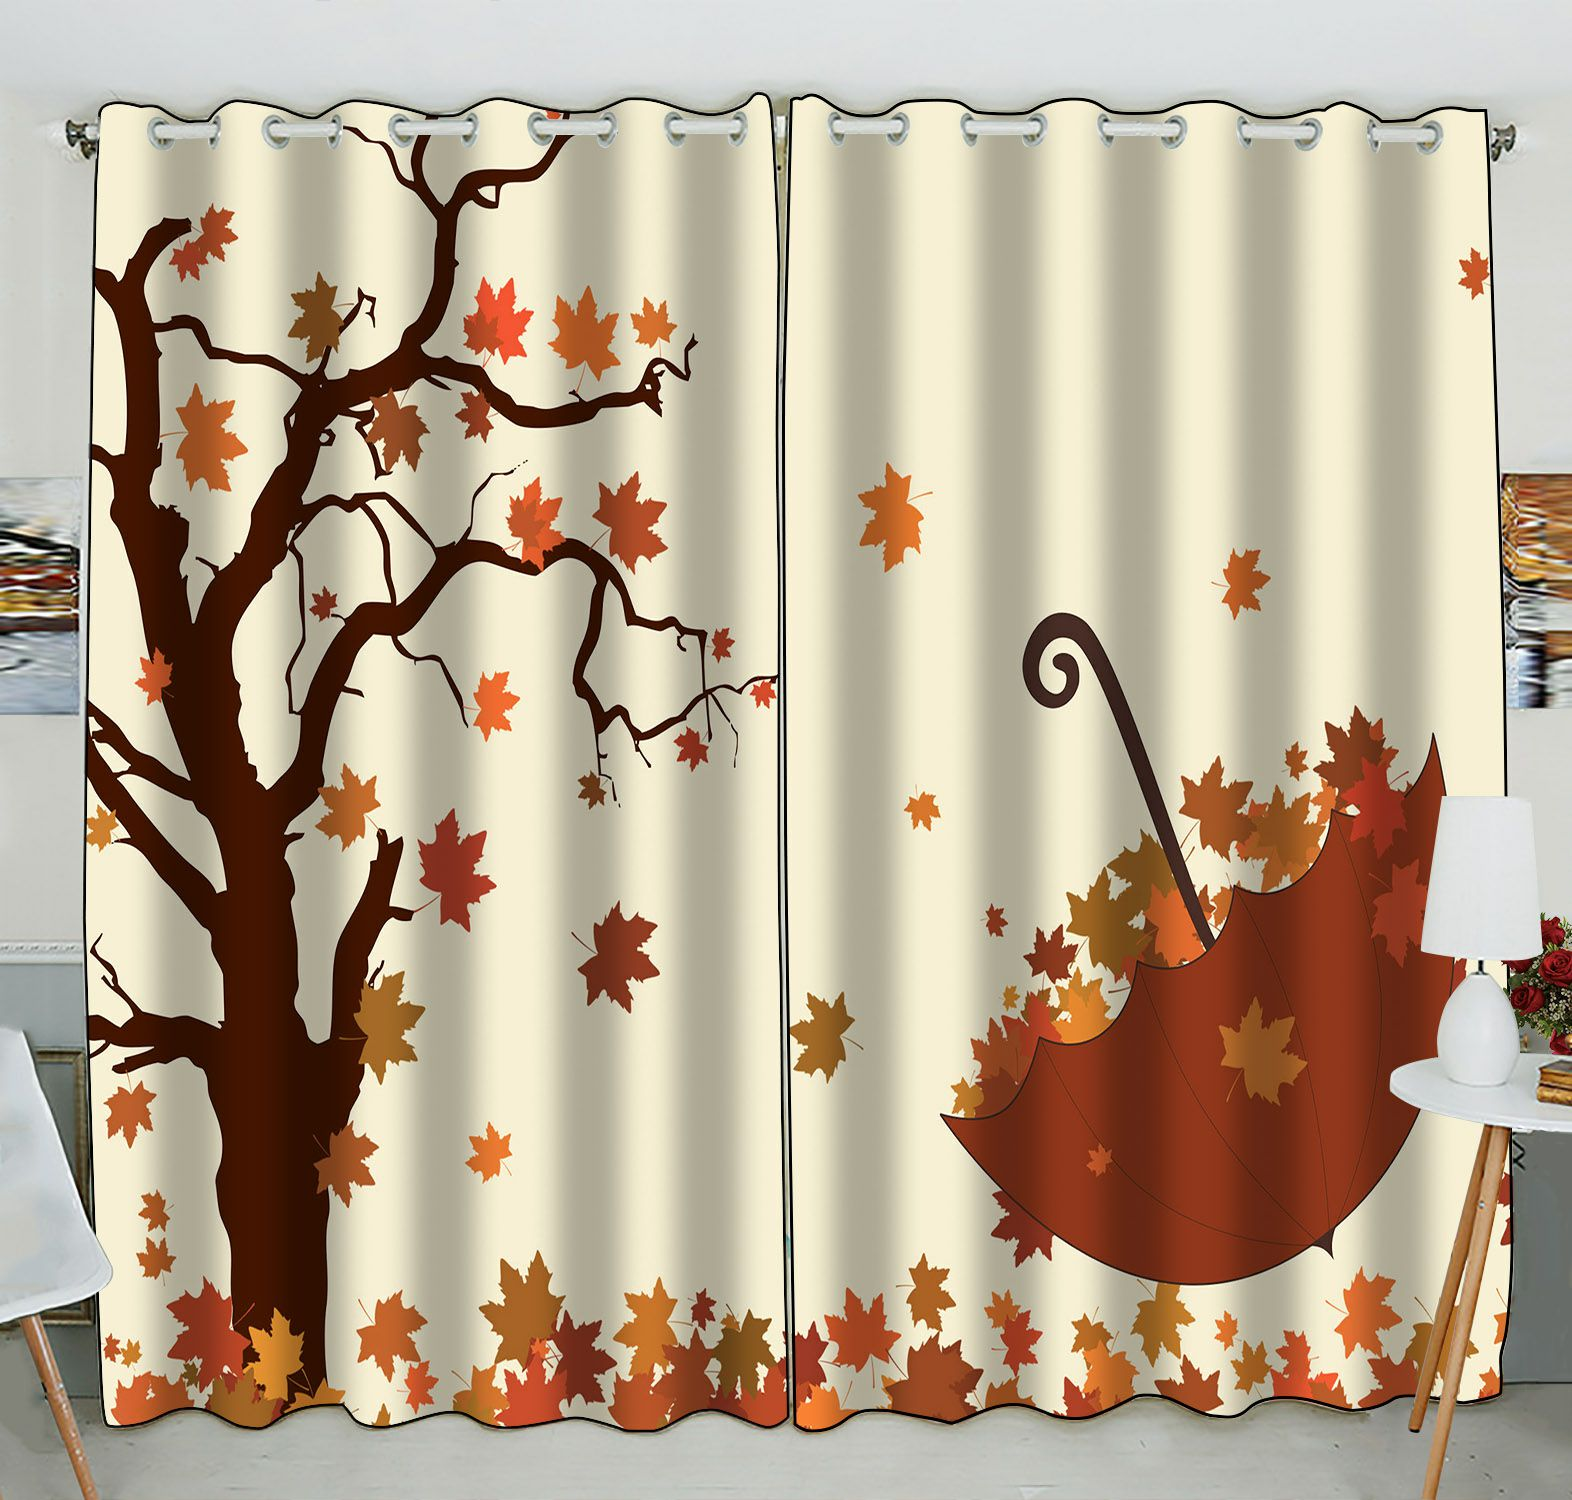 ZKGK Fallen Leaves in Autumn Window Curtain Drapery/Panels/Treatment For Living Room Bedroom Kids Rooms 52x84 inches Two Panel